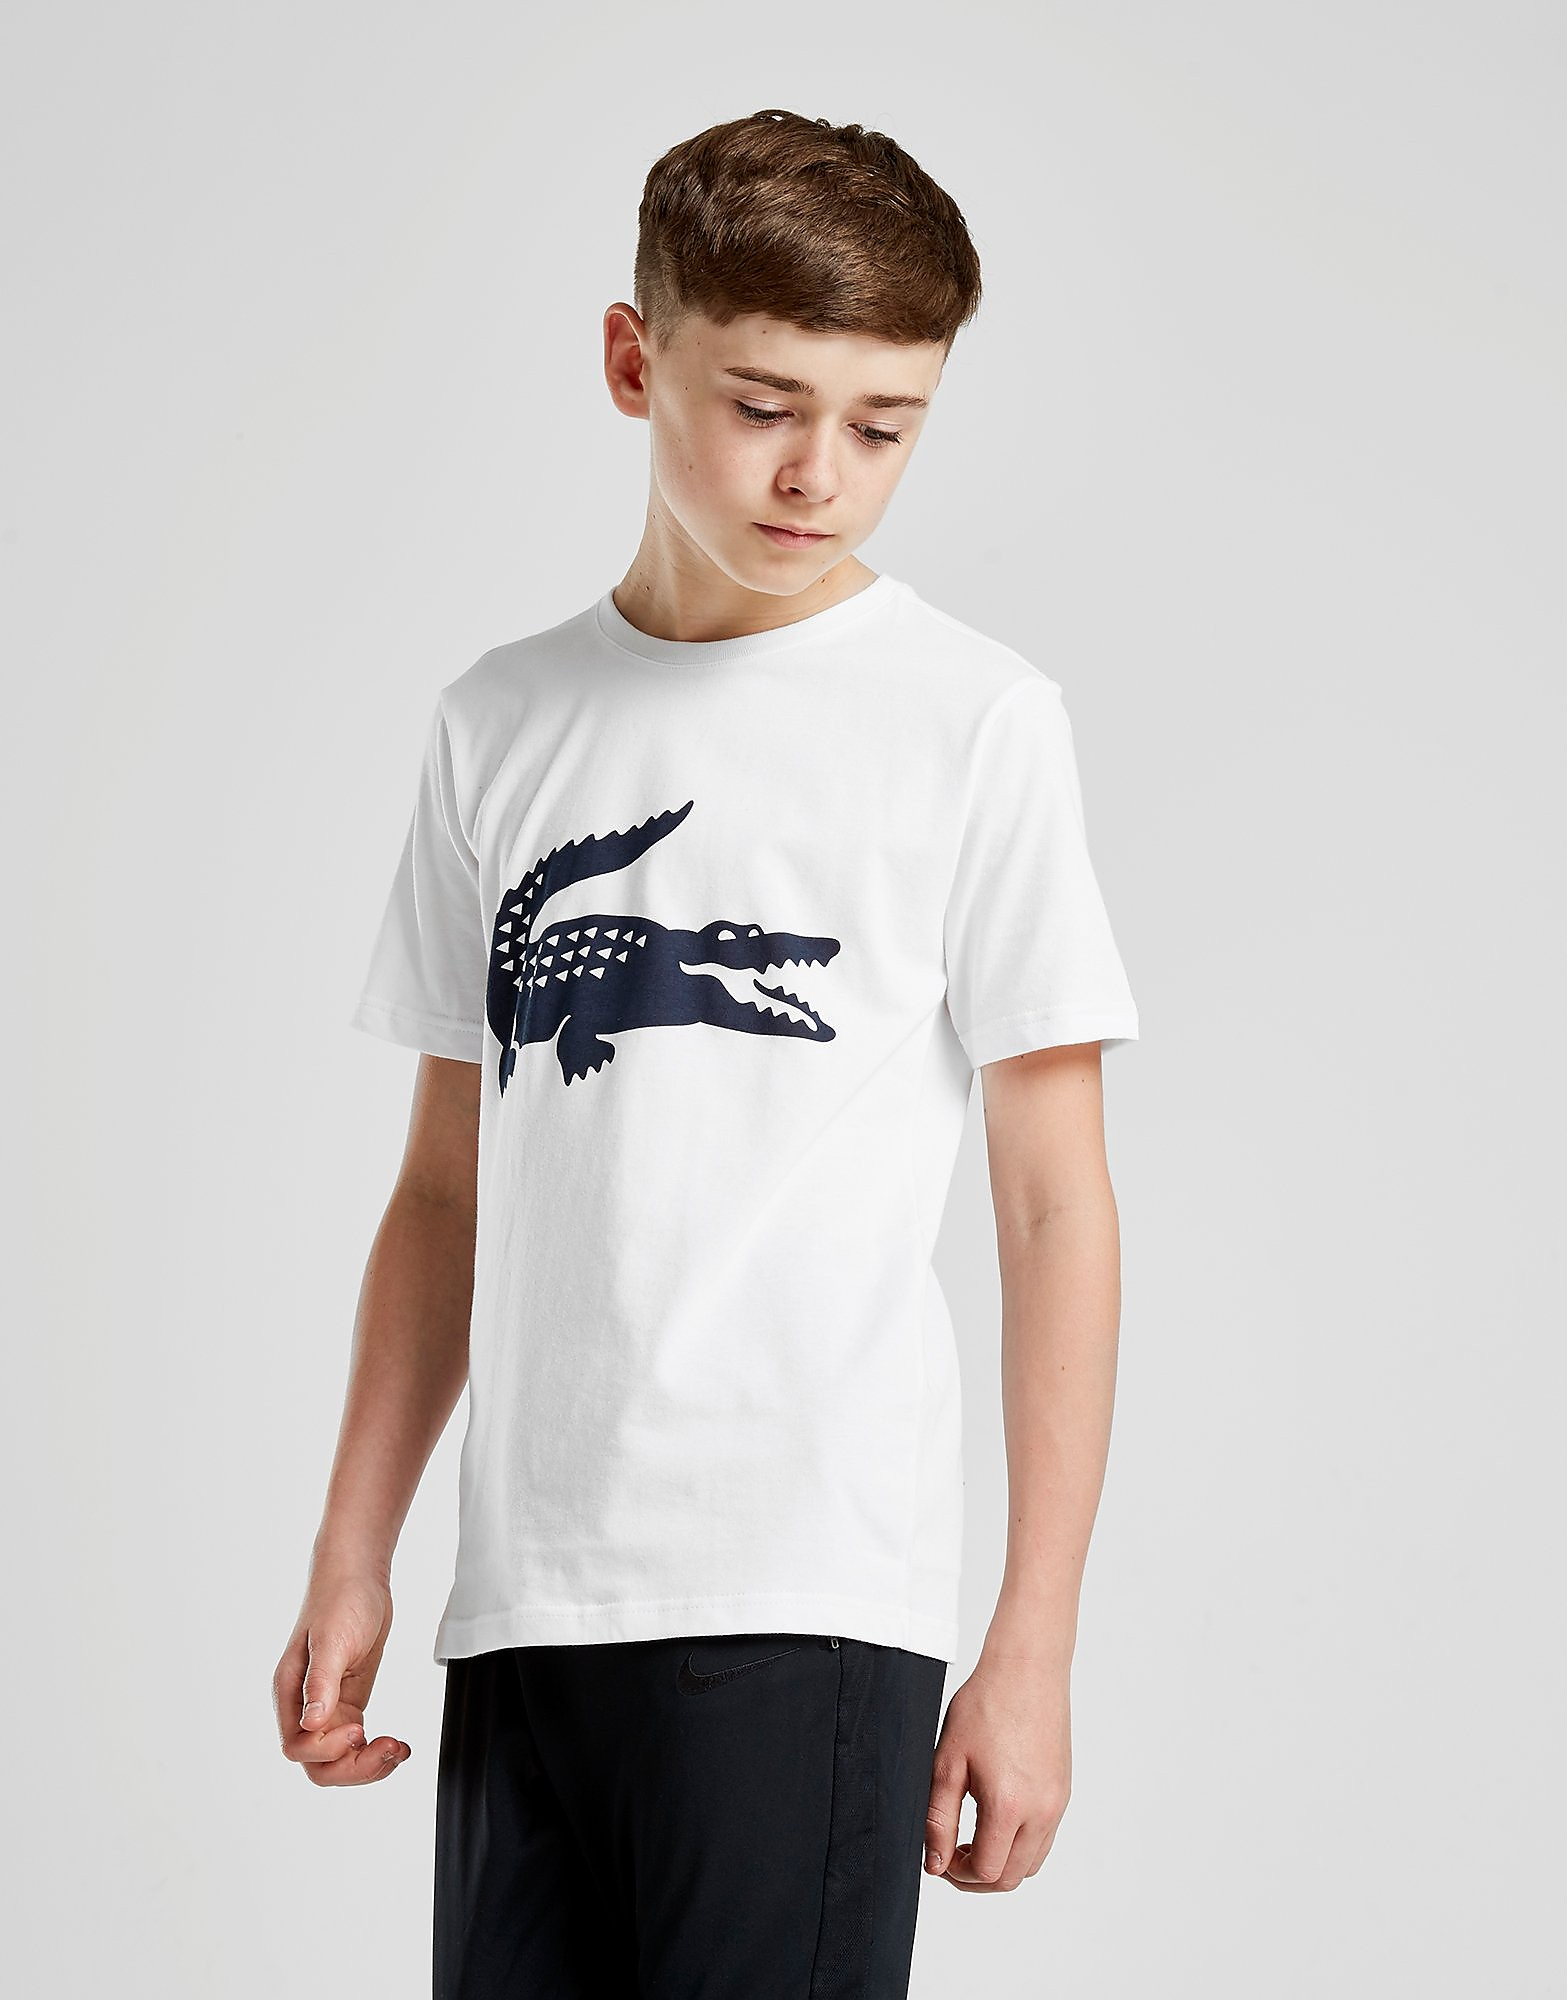 Lacoste Croc T-Shirt Junior - Wit - Kind